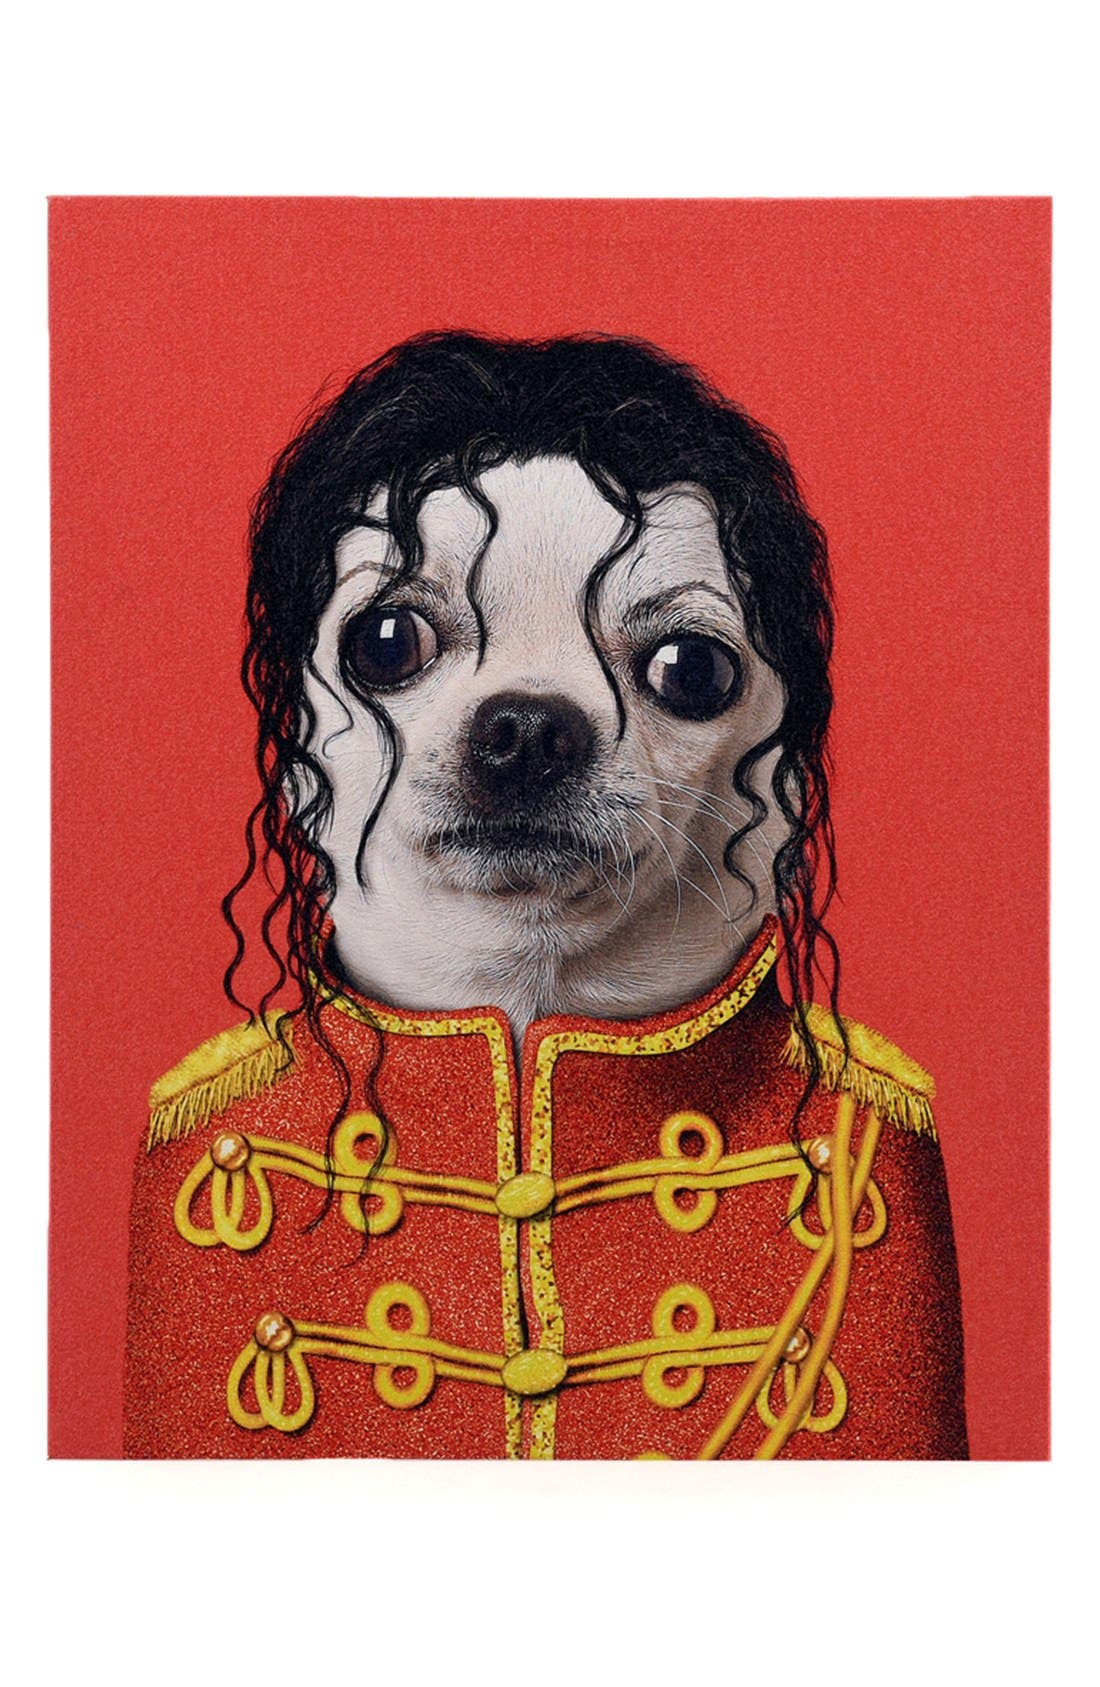 EMPIRE ART DIRECT 'Pets Rock™ - Pop' Giclée